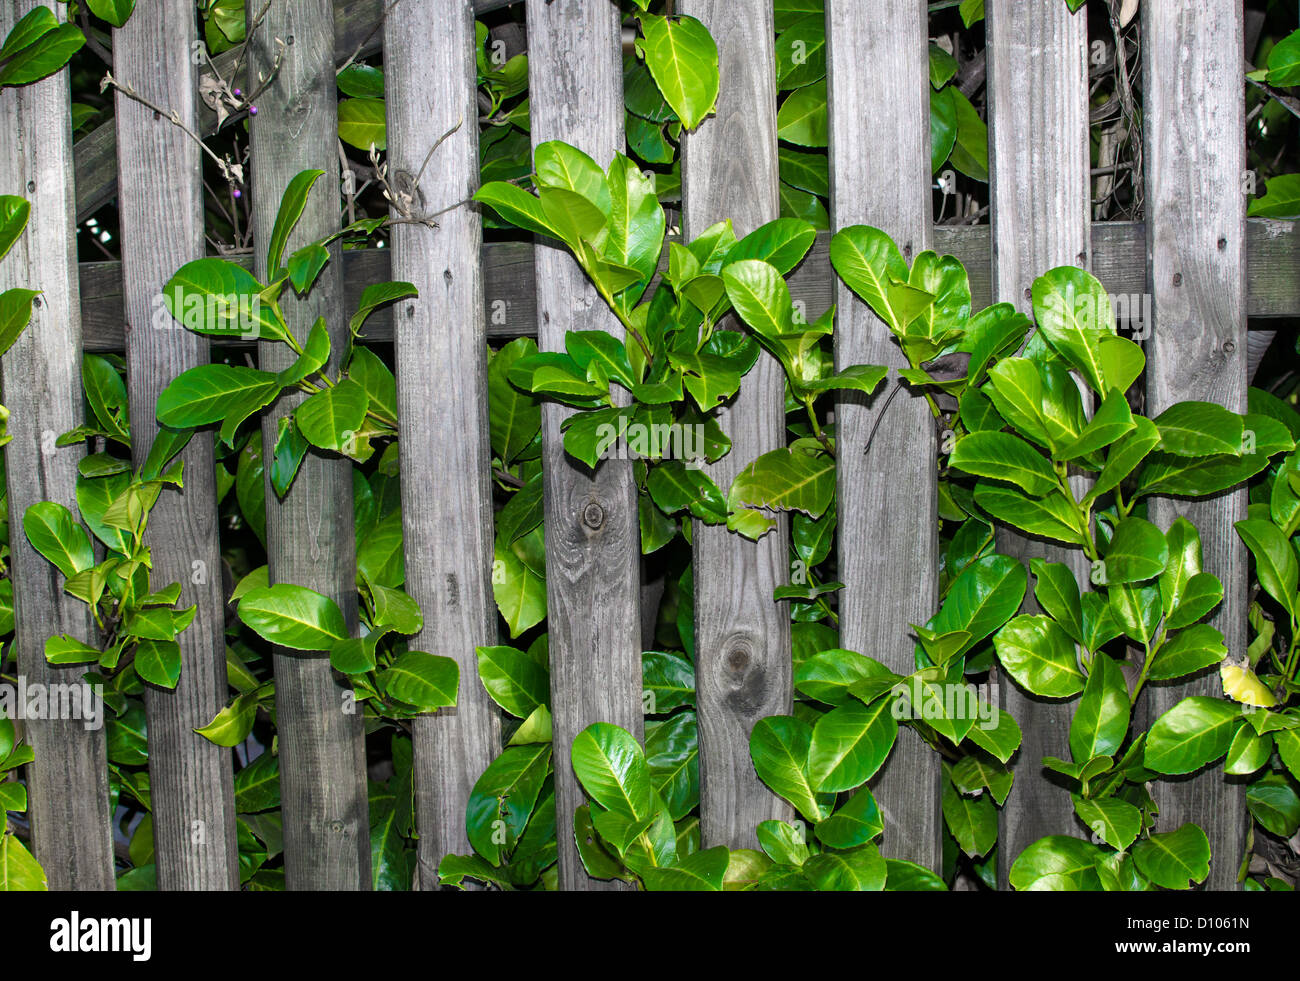 Close-up of a wooden garden fence overgrown by a green plant - Stock Image